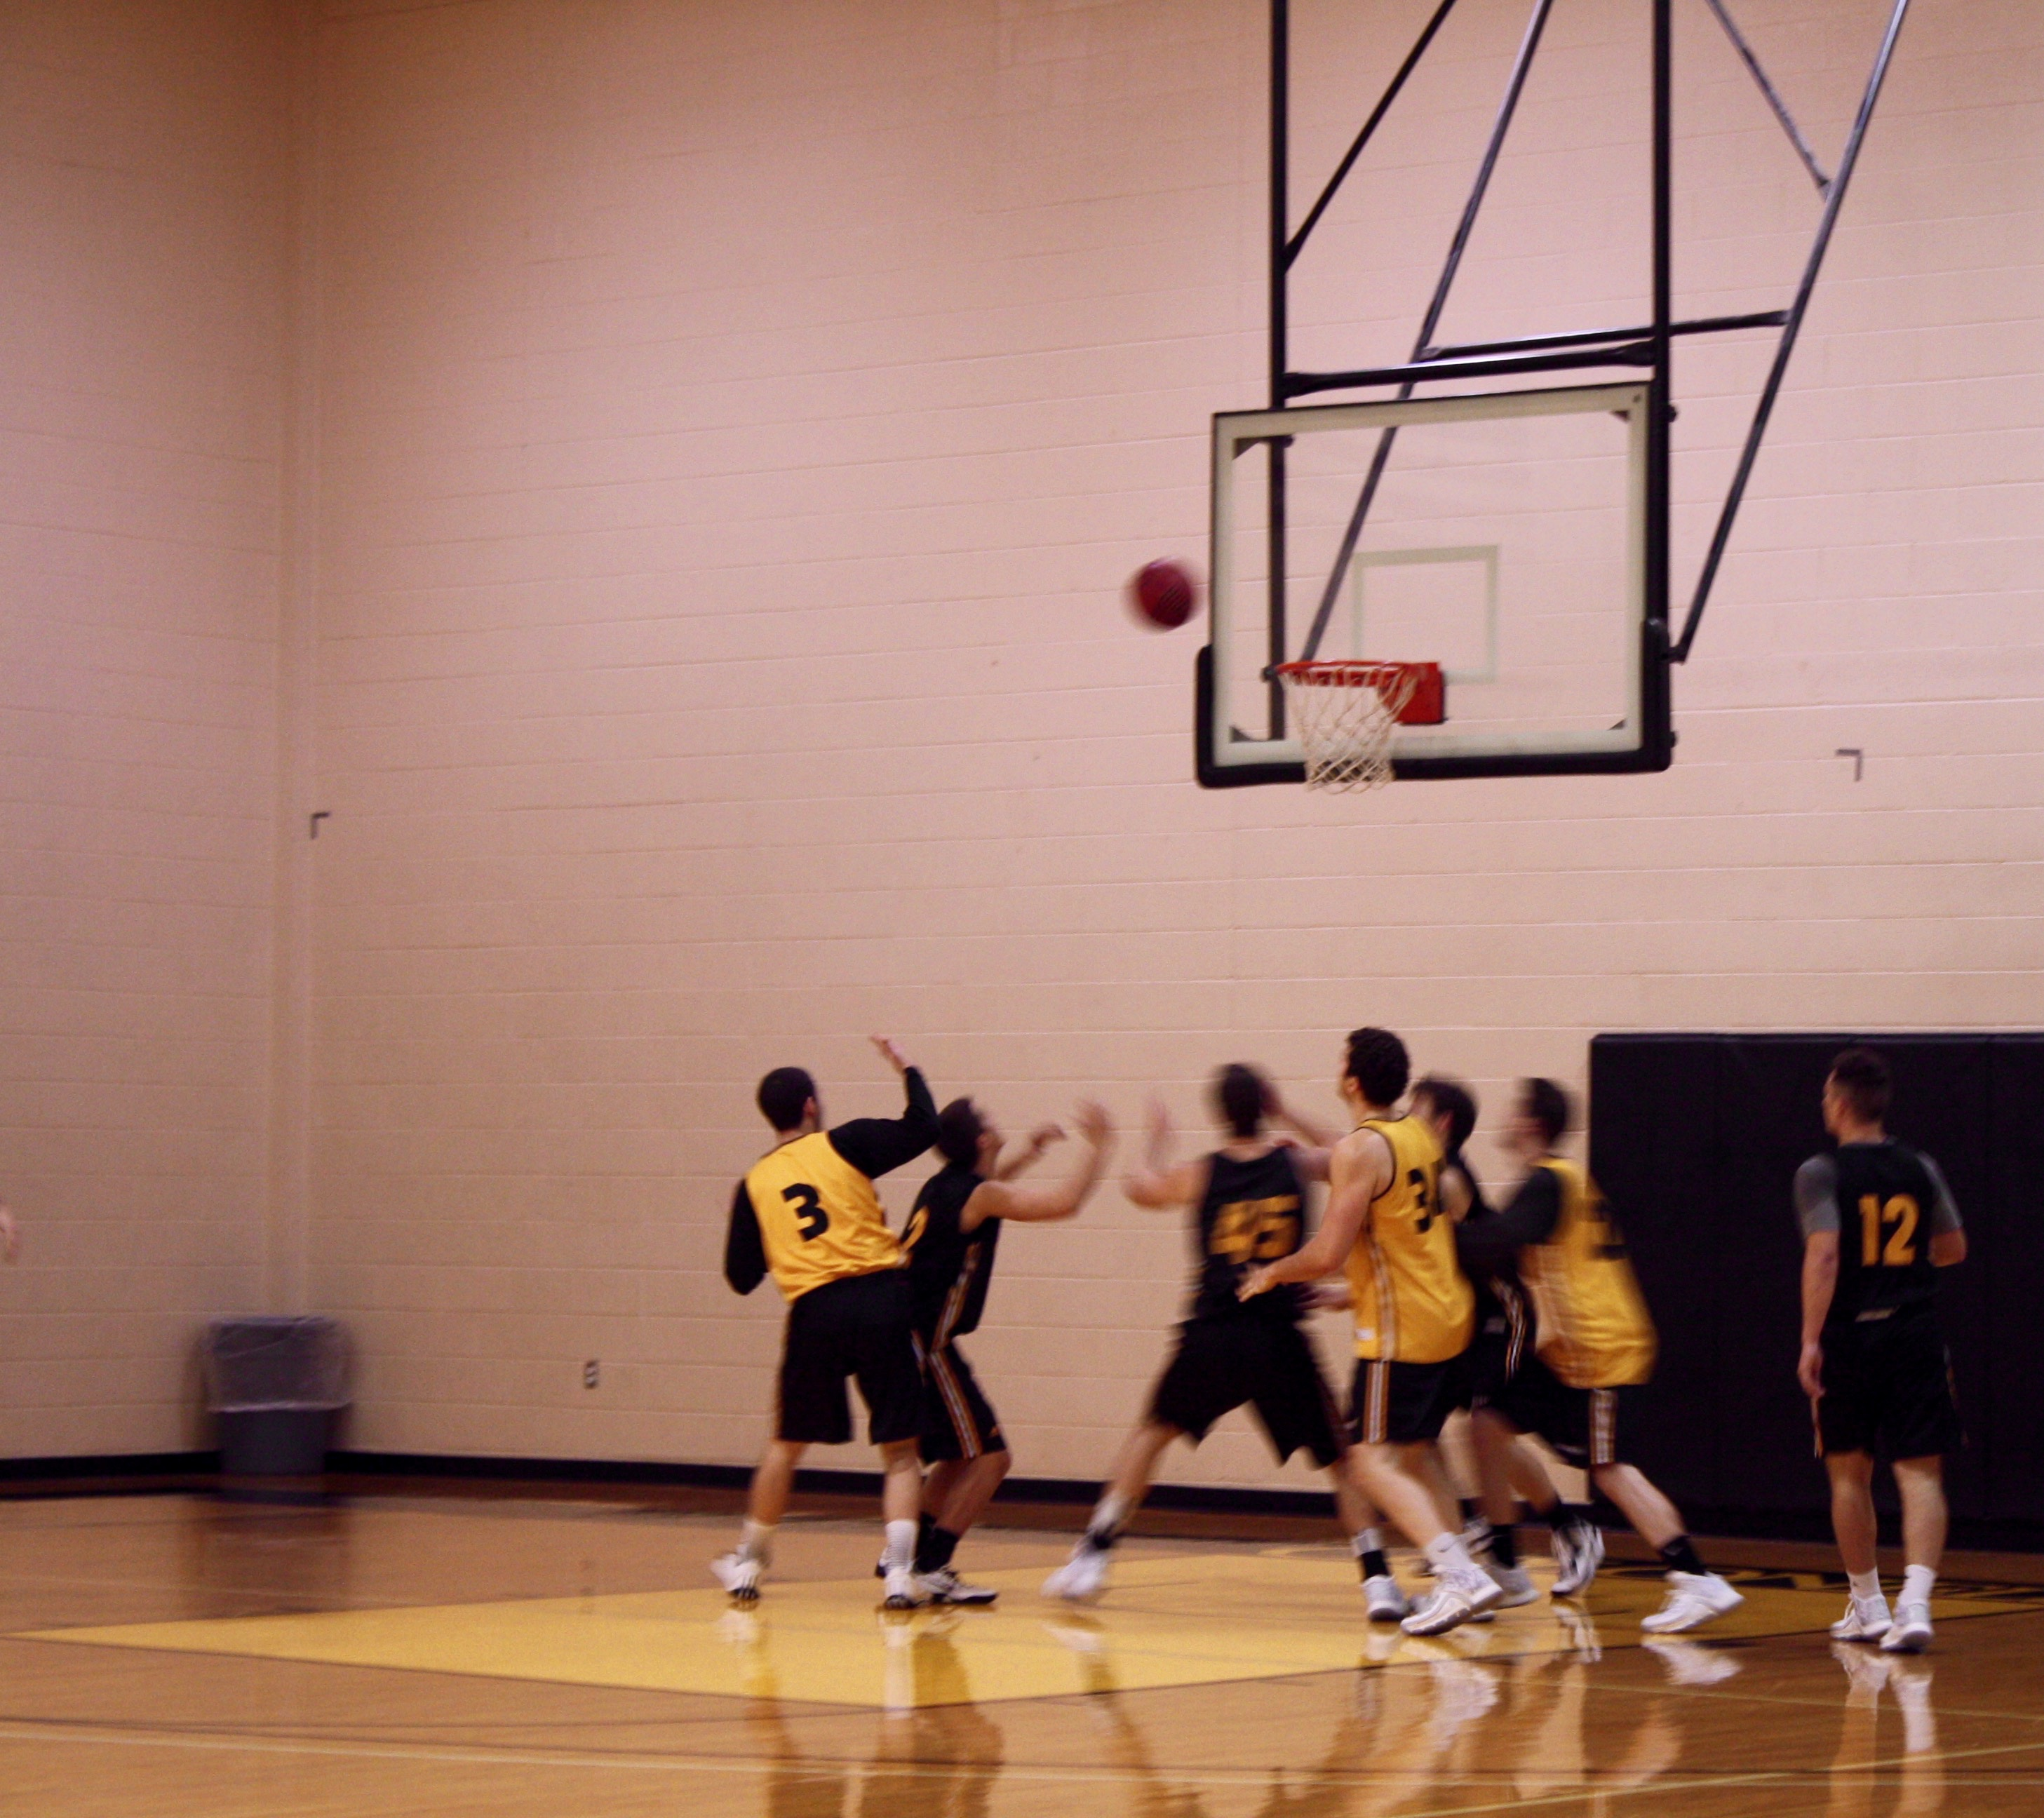 Centre Men's Basketball embracing the process of success in 2015-2016 season